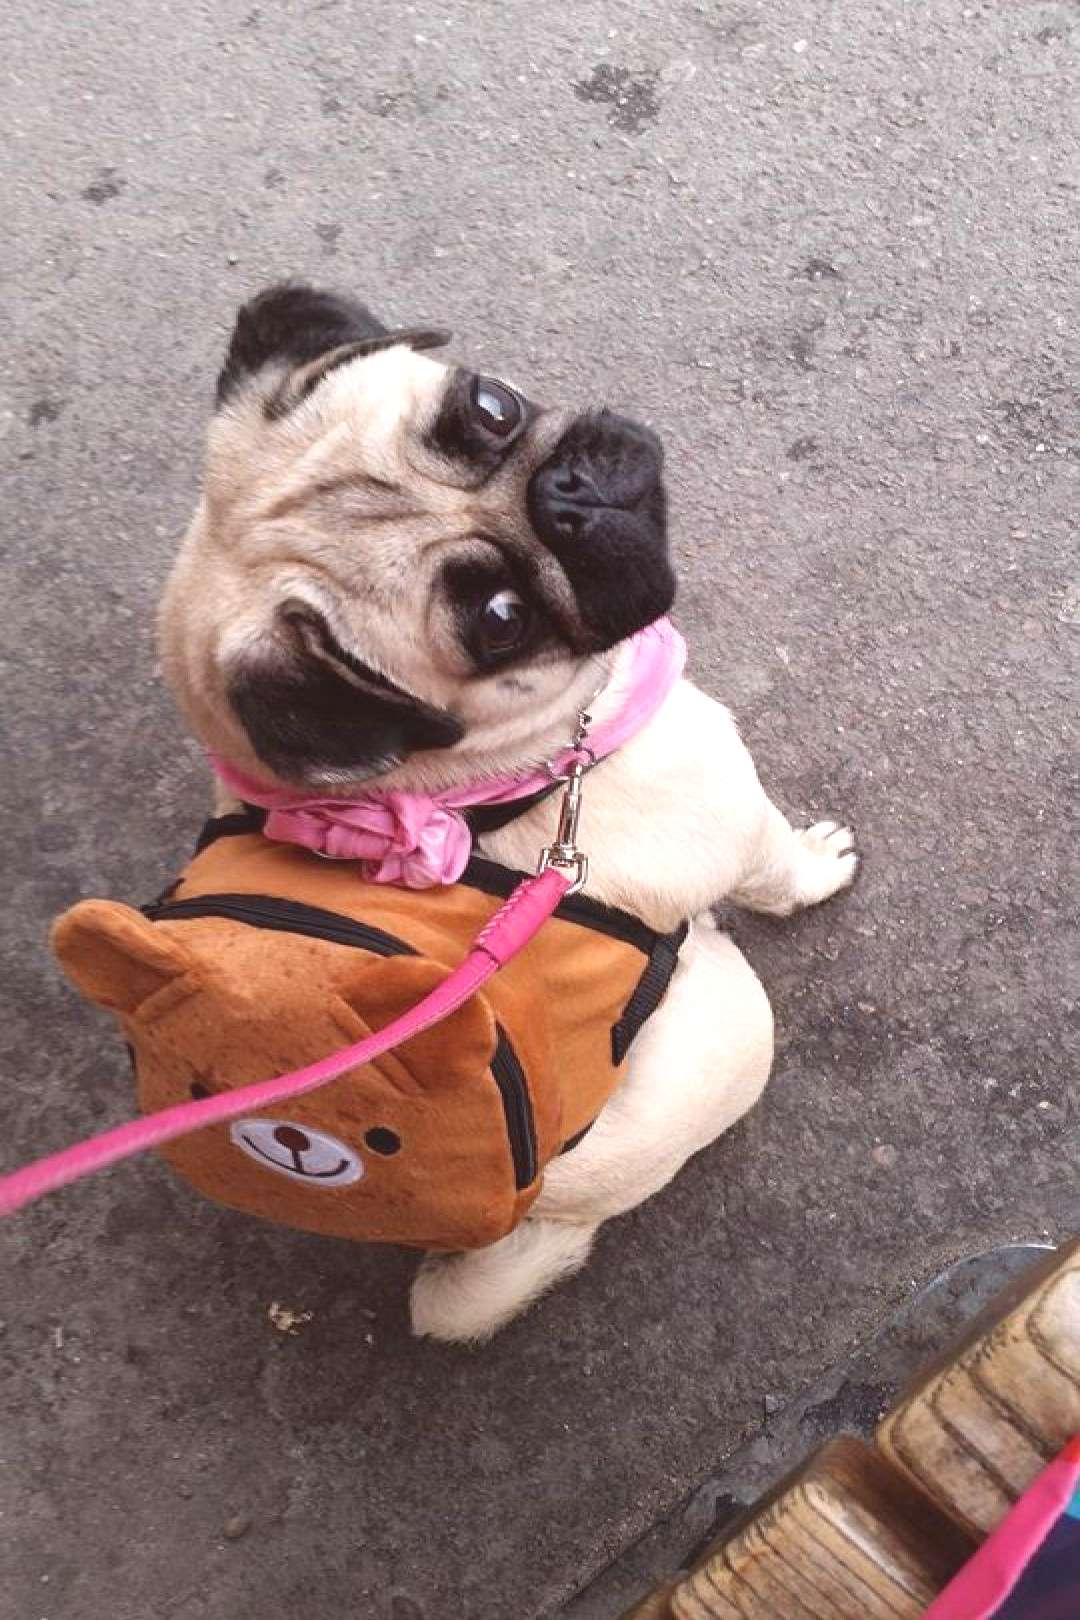 Check out our site for additional info on funny pugs. It is actually an excellent place to read mor